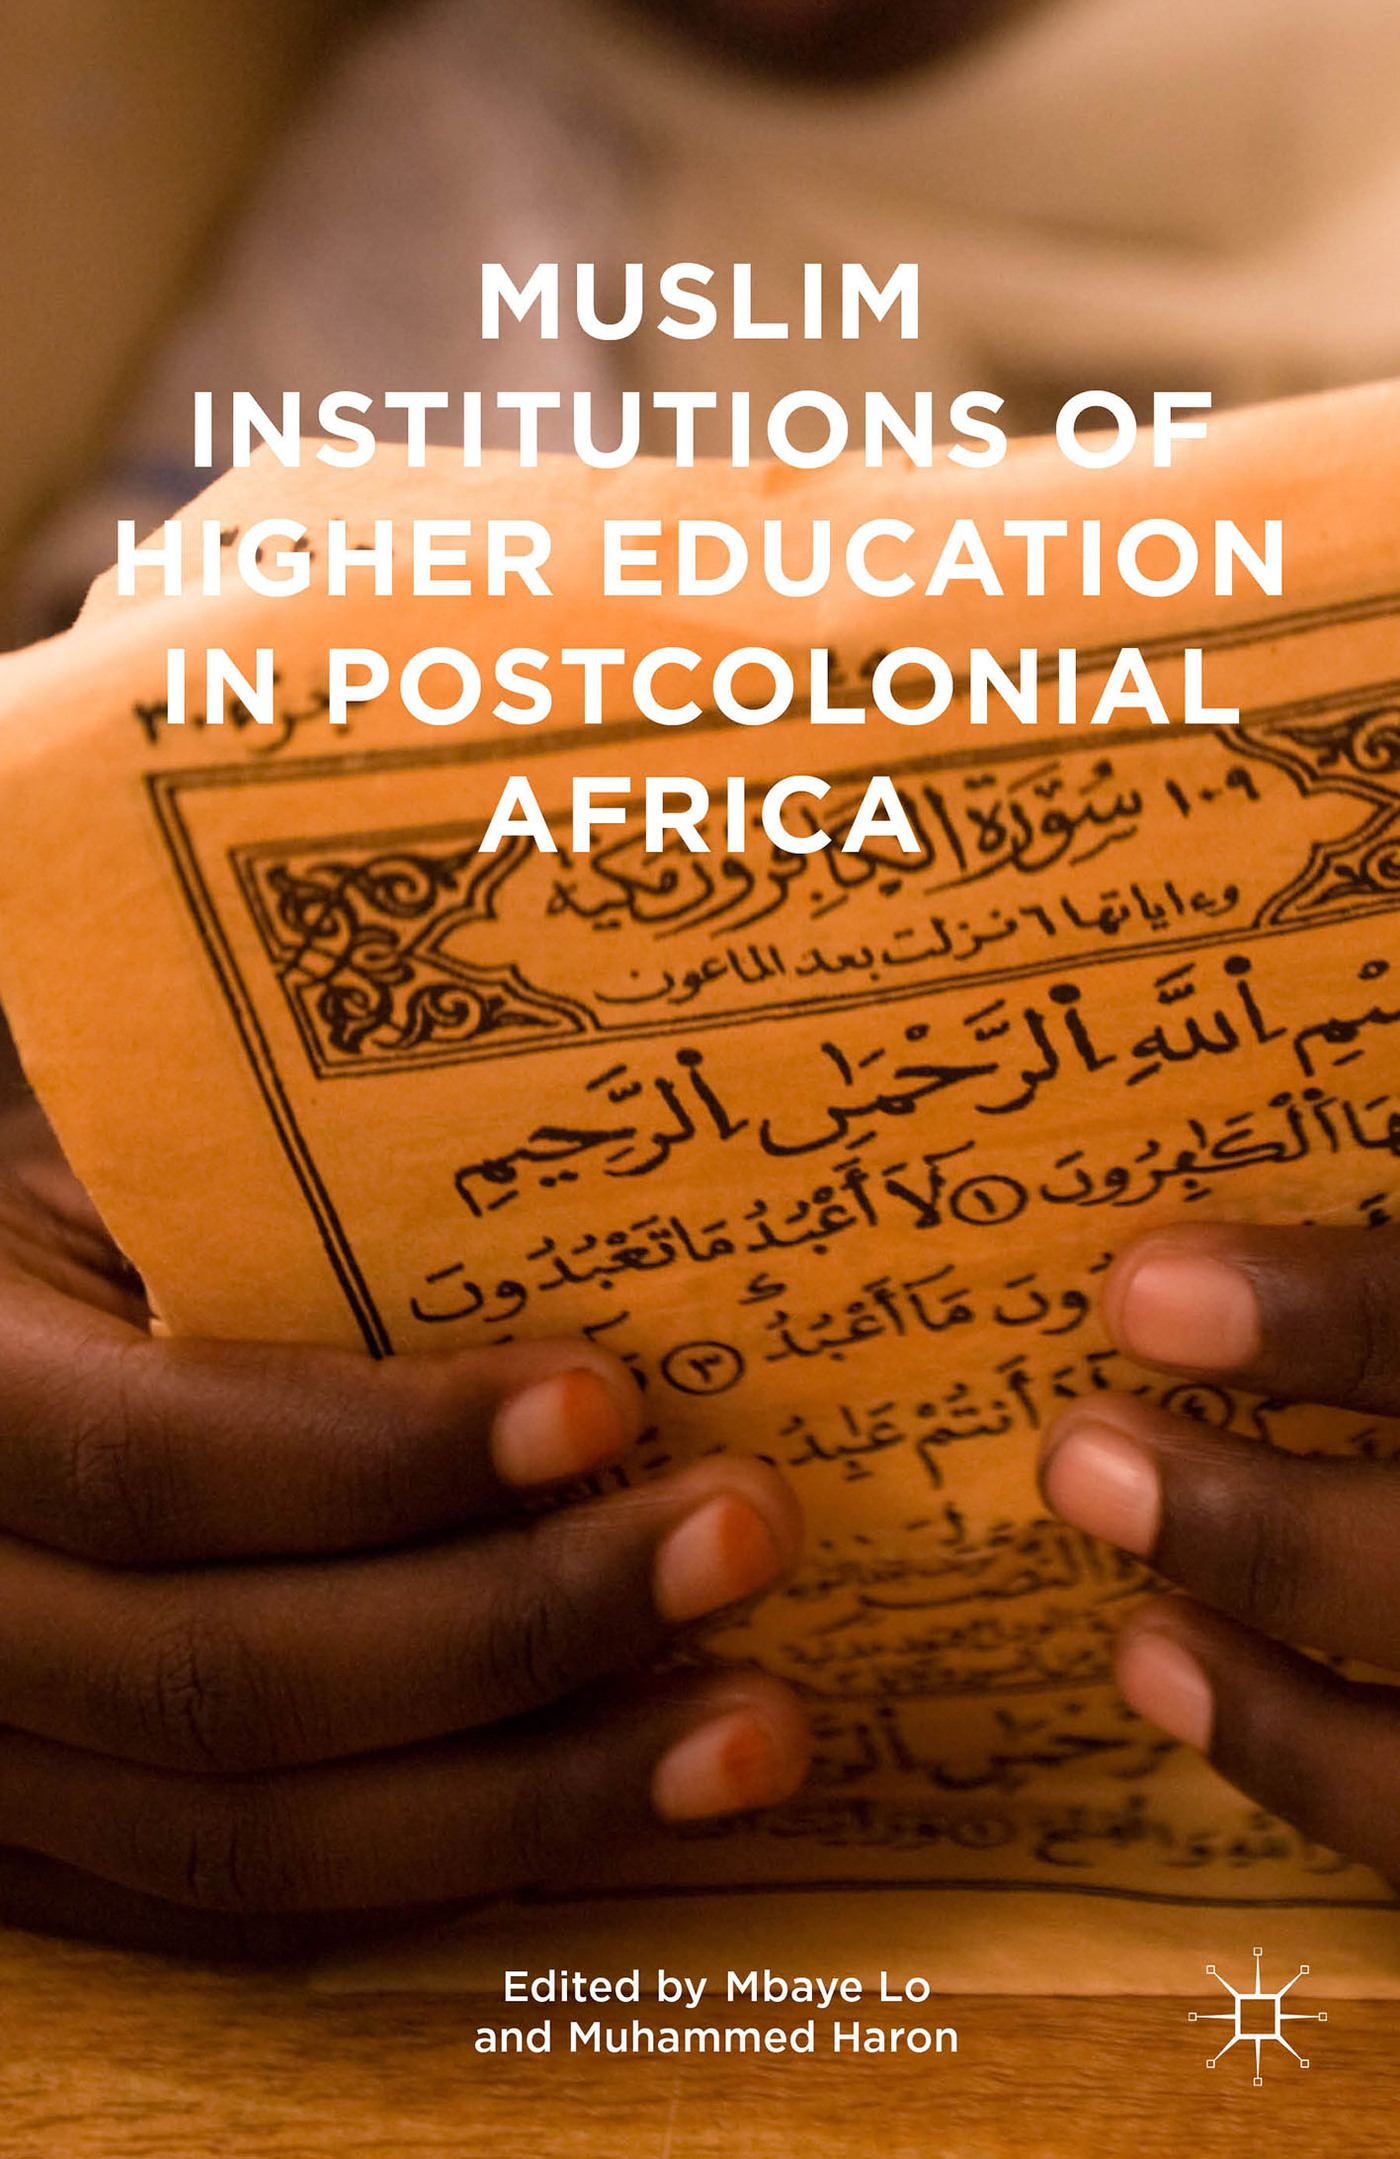 Muslim Institutions of Higher Education in Postcolonial Africa Mbaye Lo